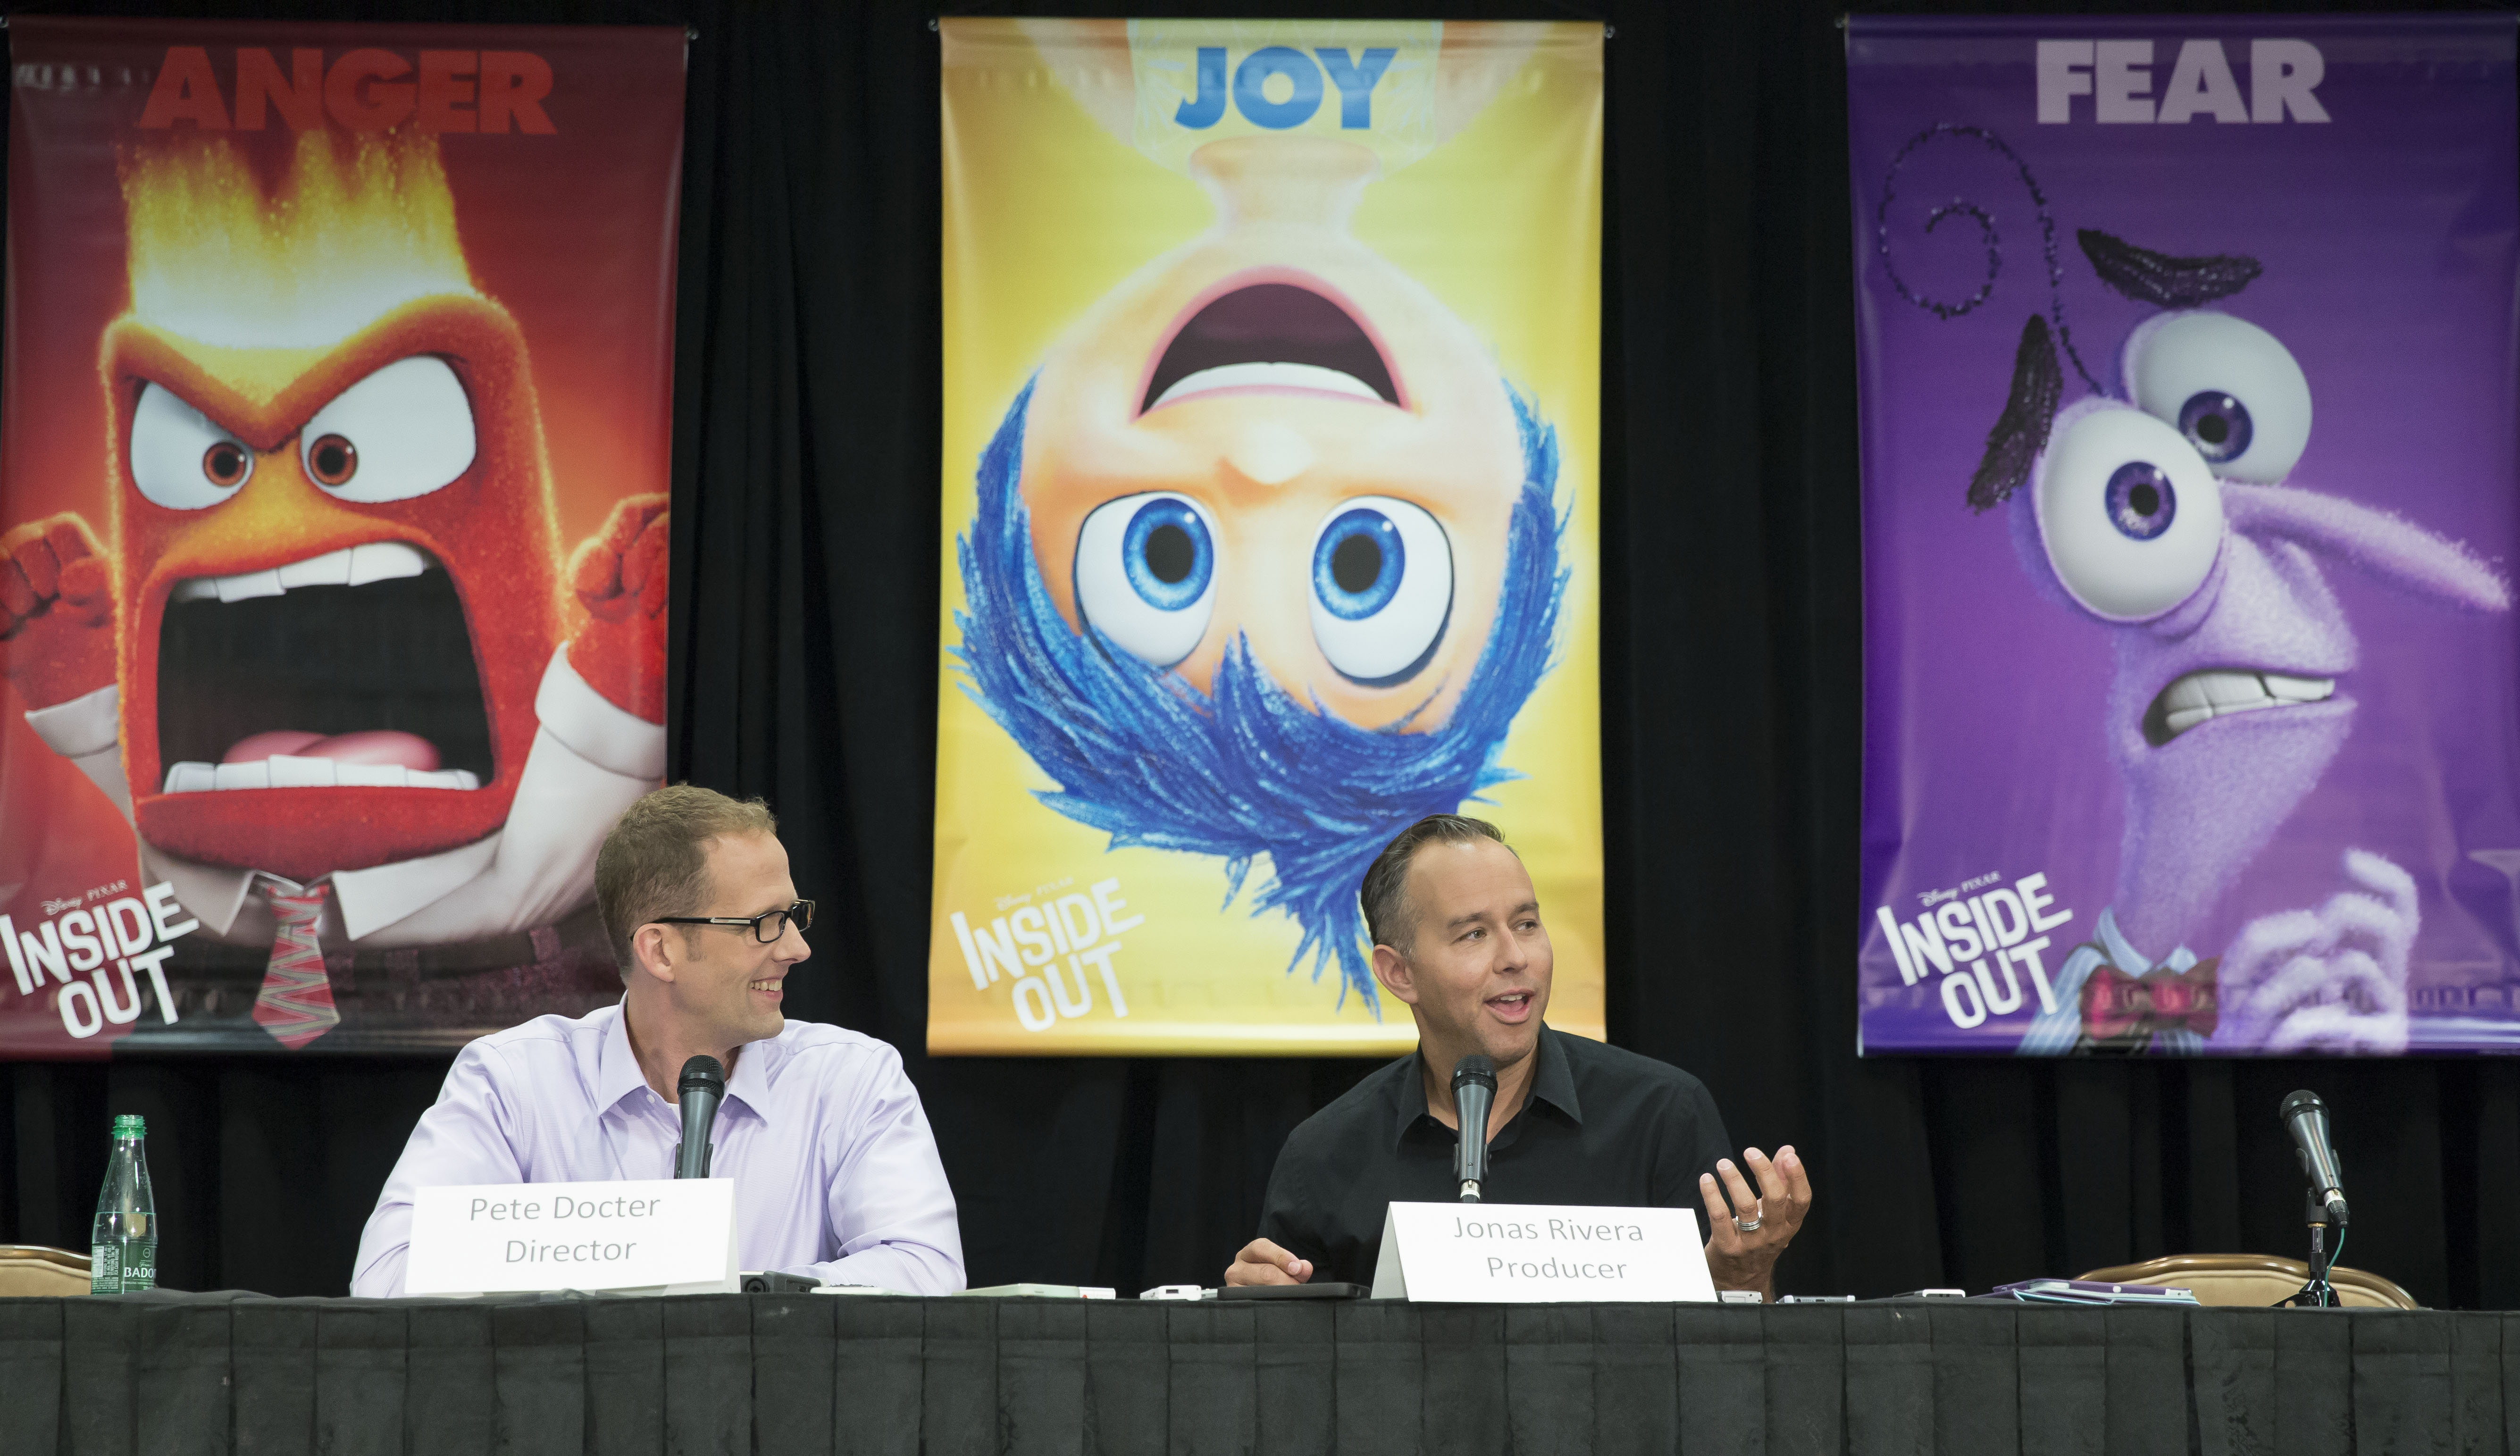 Inside out movie top secrets from insideout movie for Inside movie